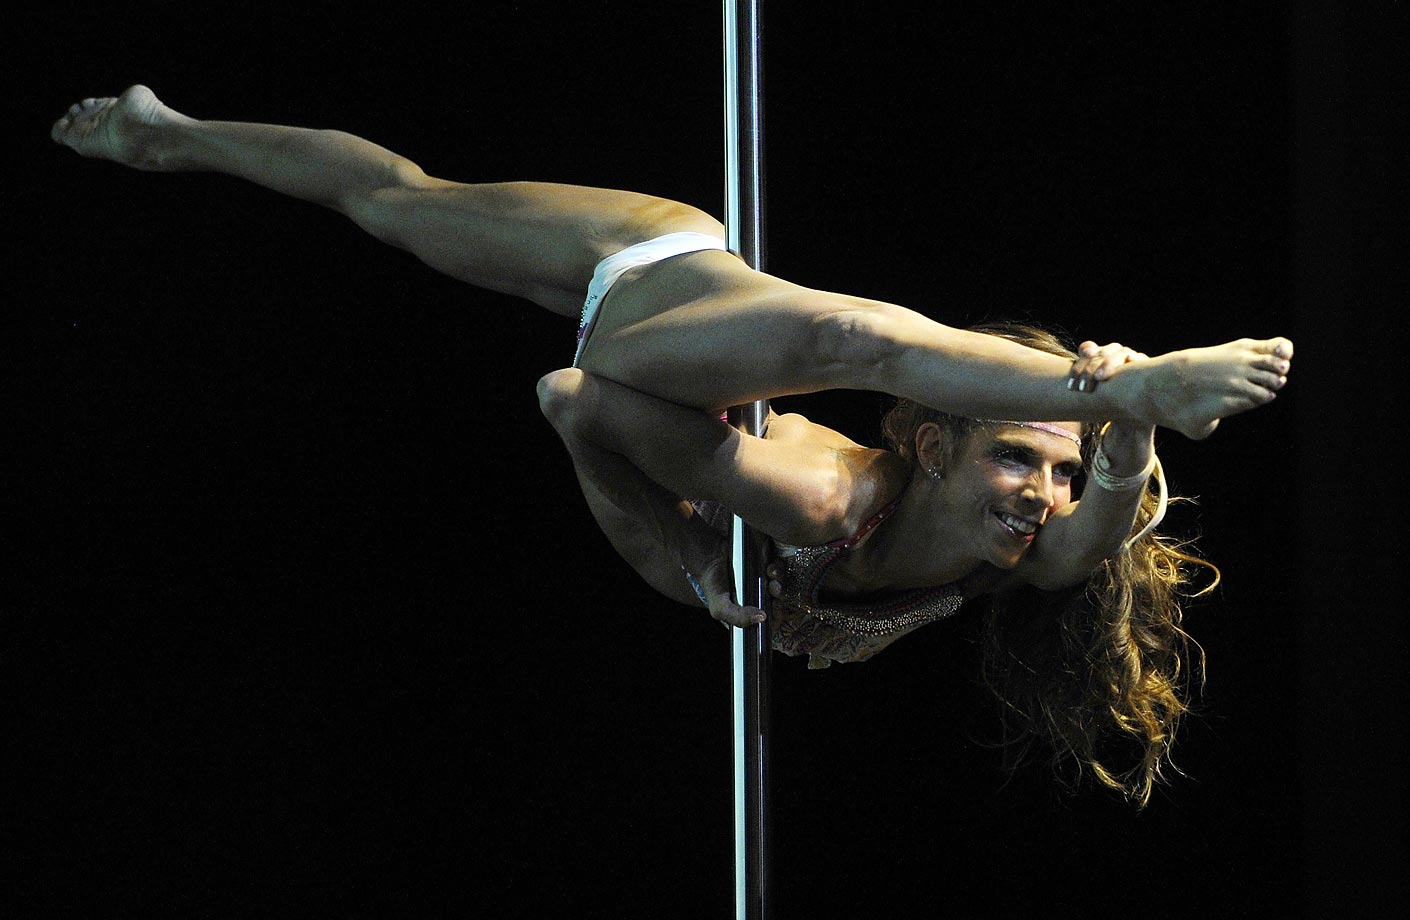 Chilean pole dancer Francisca Murillo during the South America 2014 Pole Dance competition in Buenos Aires.